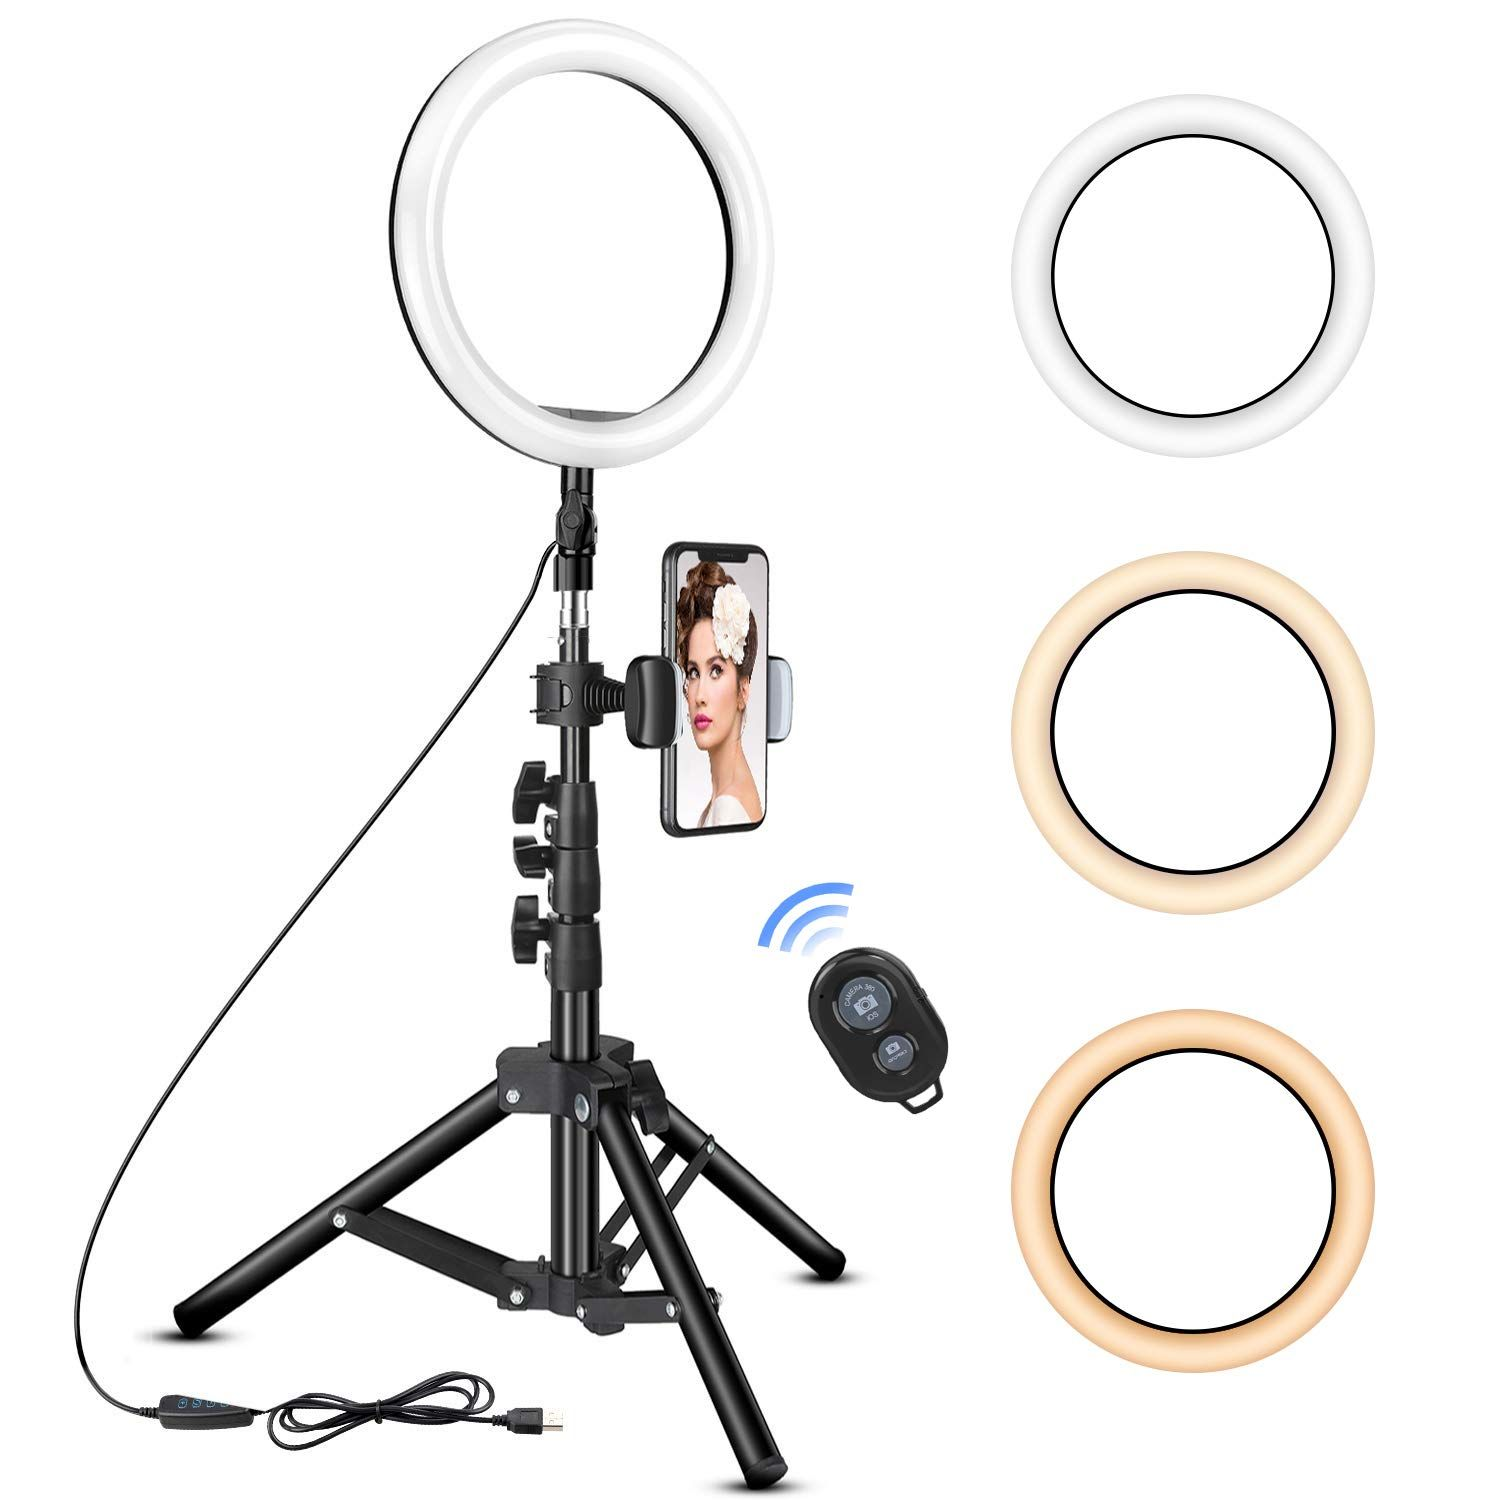 10 Inch Ring Light With Tripod S Selfie Light Camera Selfie Led Ring Light